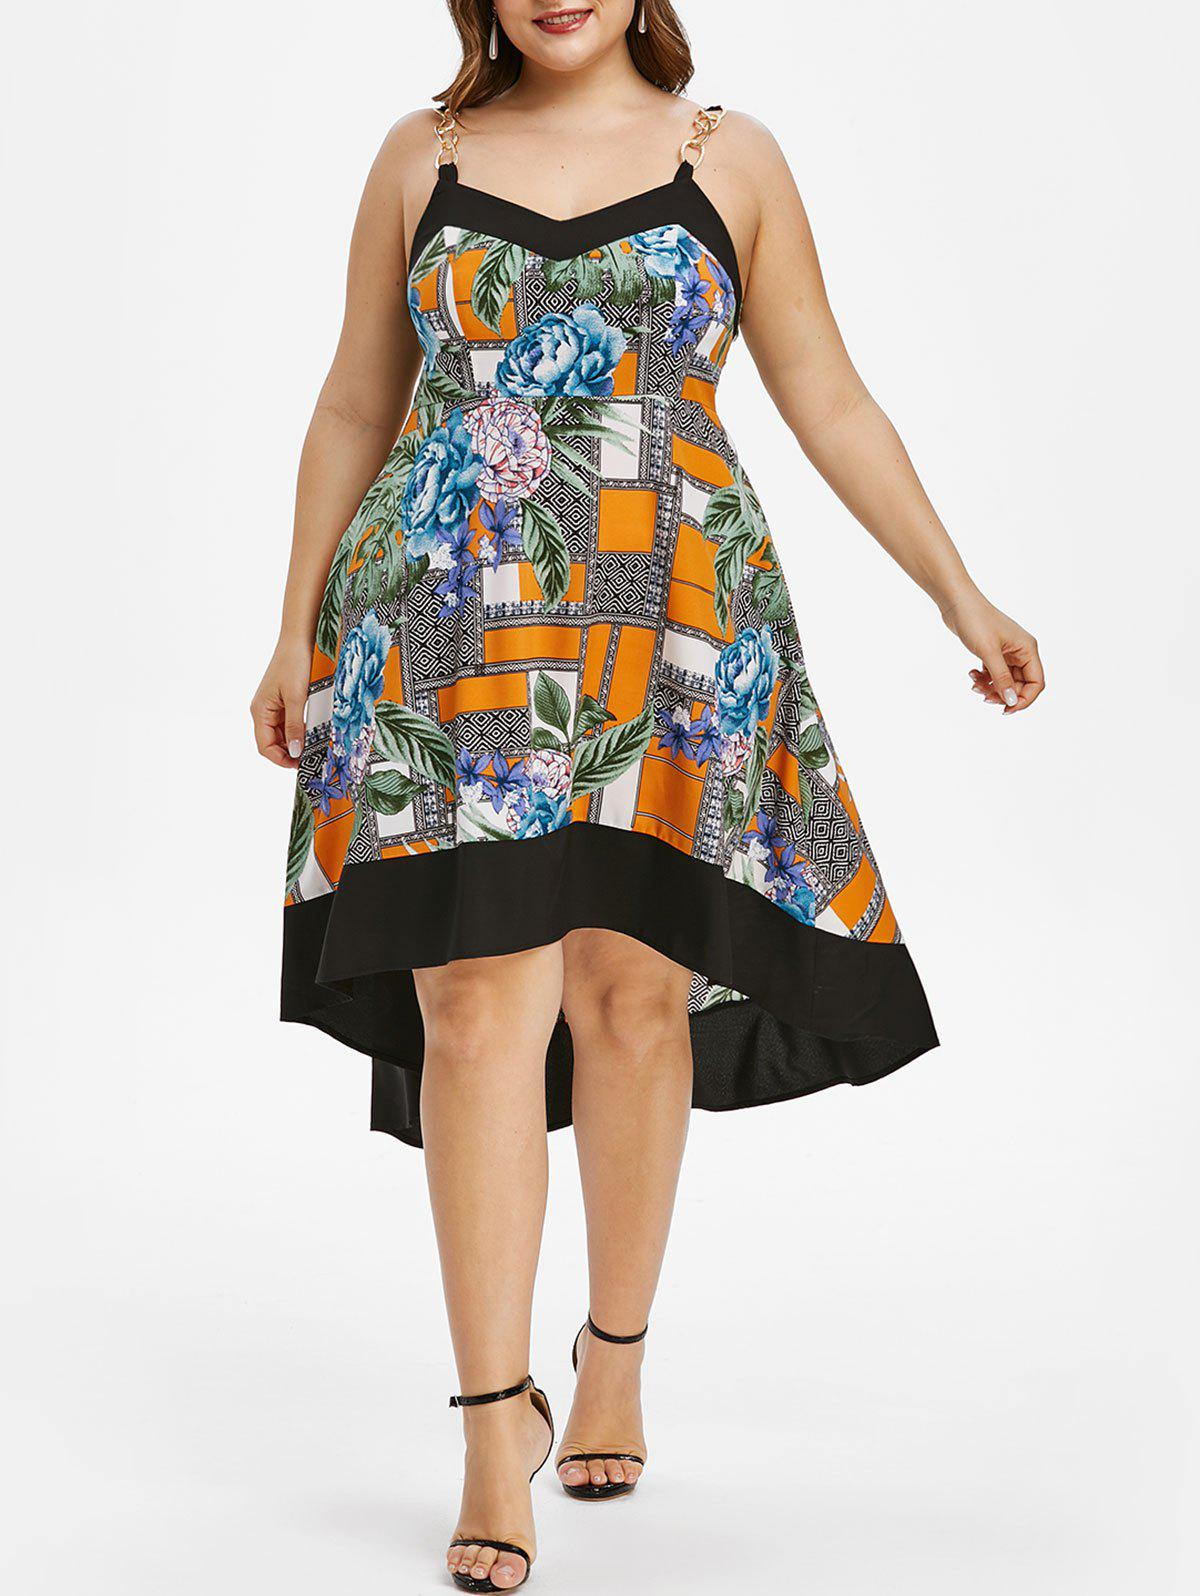 Plus Size Sleeveless High Low Floral Print Dress - multicolor 2X